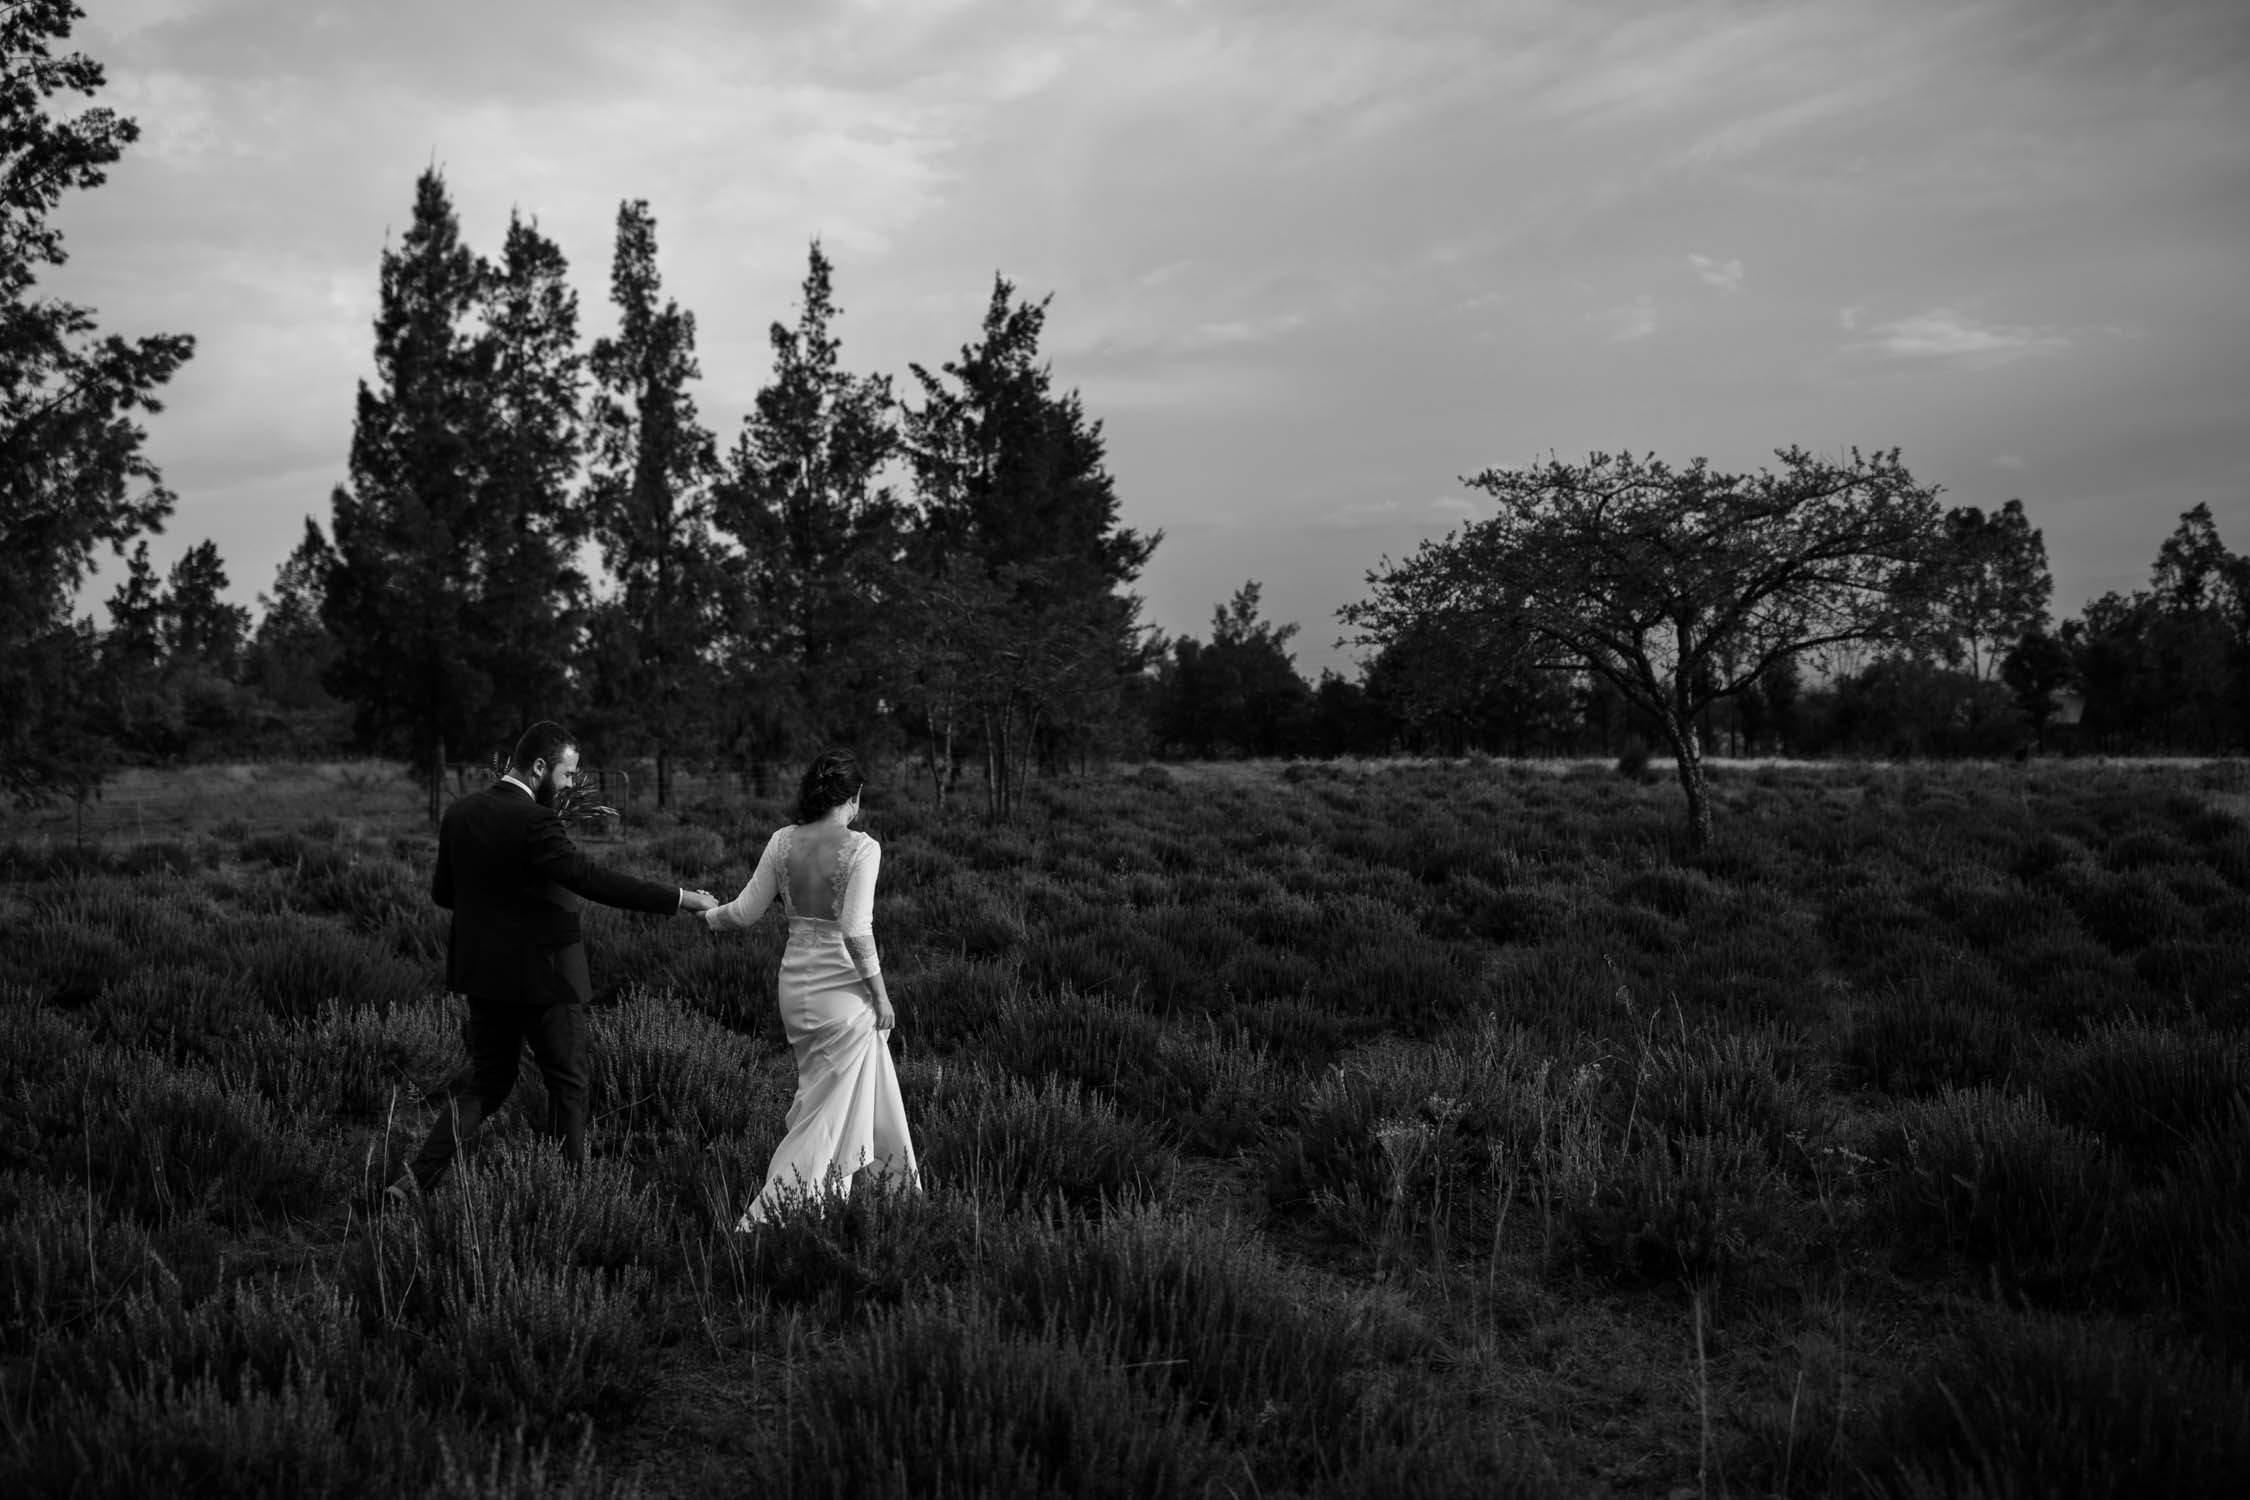 Epic black and white photo of couple walking in a rosemary field taken by candid Vancouver Wedding Photographer